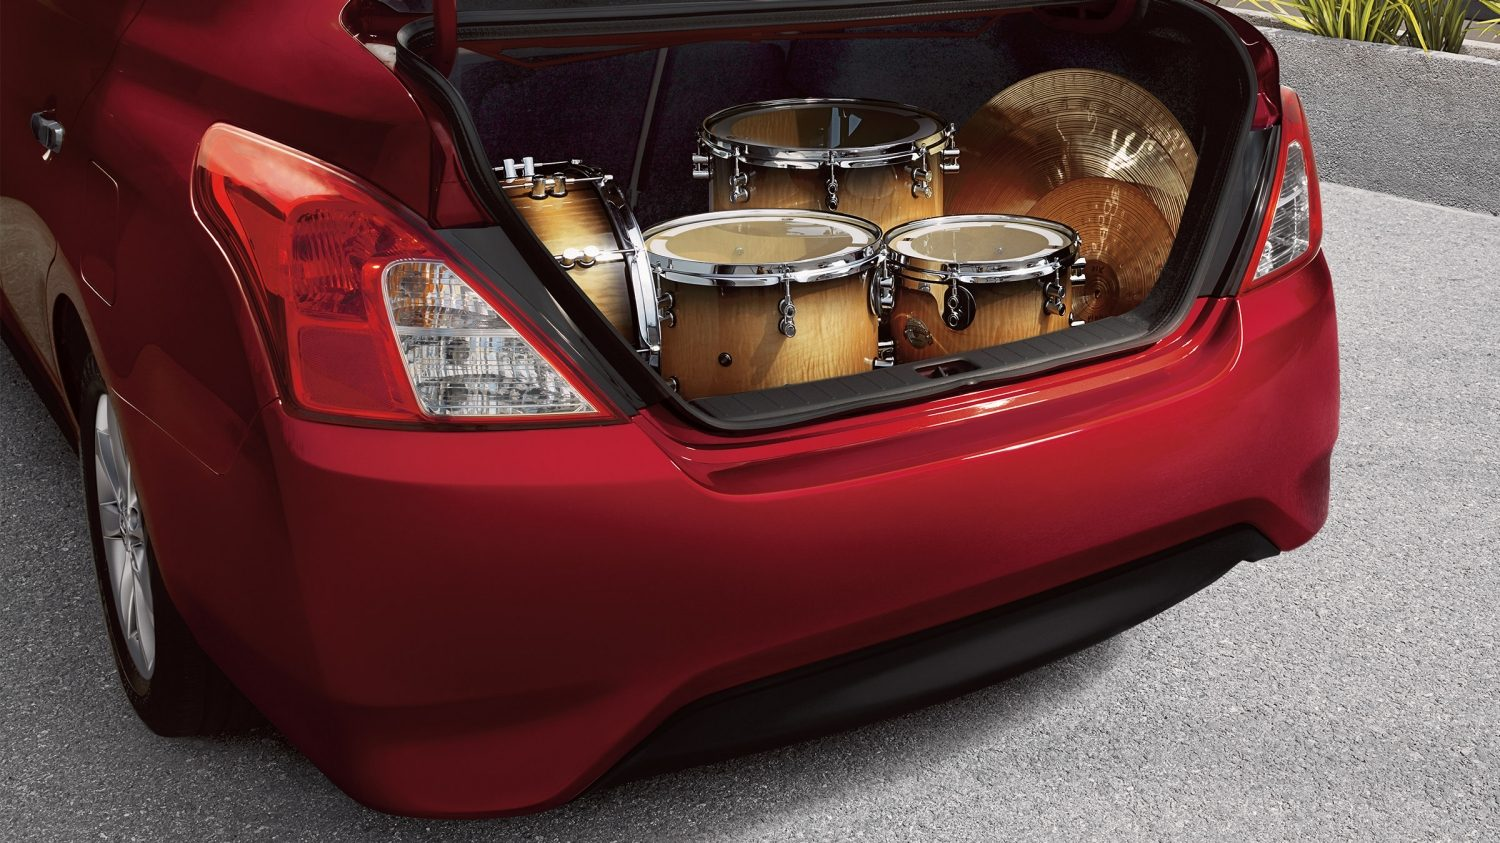 Nissan Versa Trunk with drum set inside